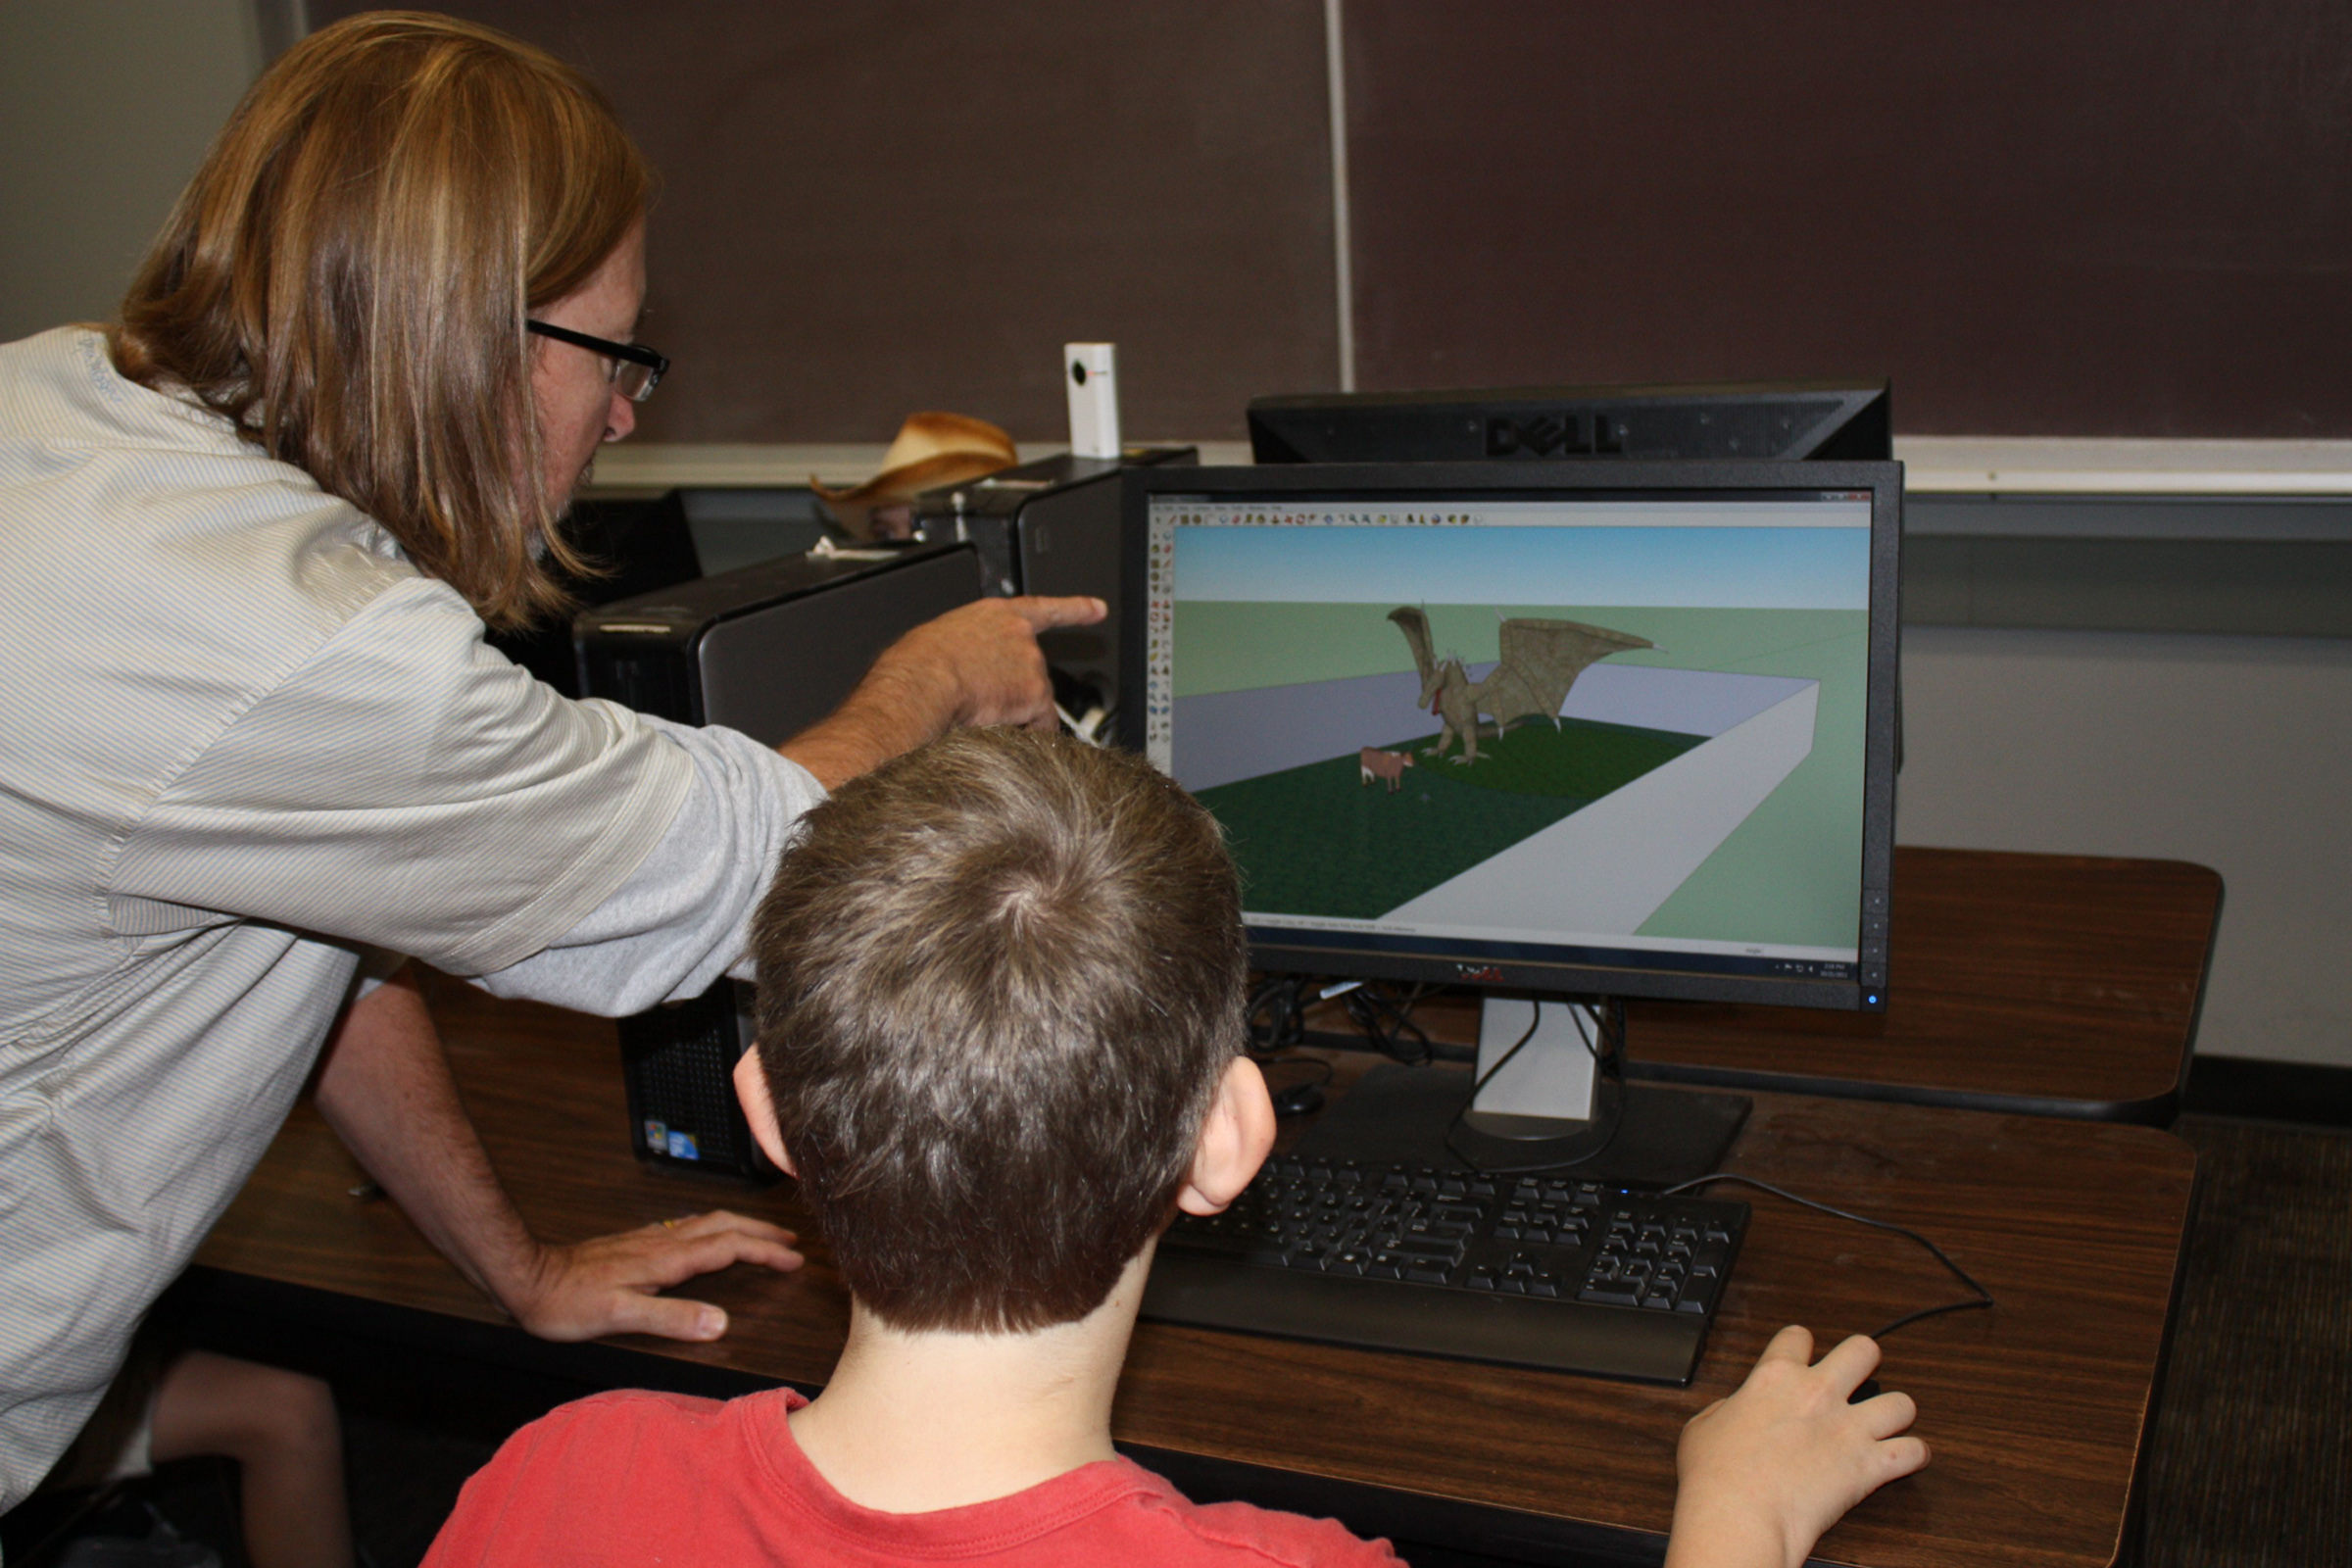 Steve Gross, certified SketchUp instructor, helps student tap into the technology at an iSTAR workshop for kids on the autism spectrum. Researchers found that for grandparents involved with their grandchildren in the workshops, new communication doors were opened between them.